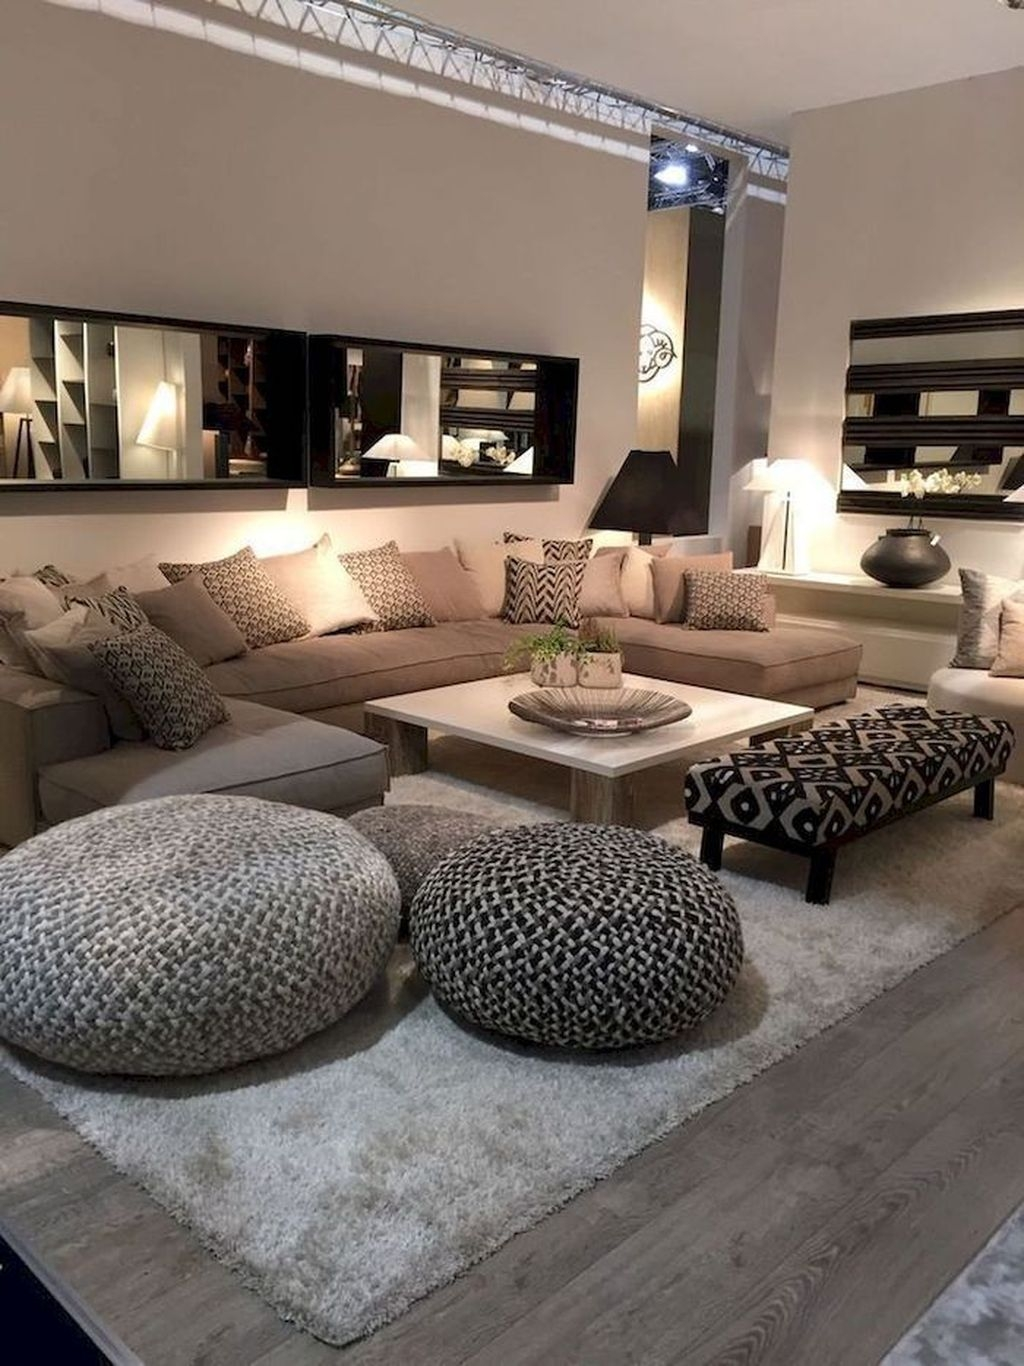 Awesome Living Room Mirrors Design Ideas That Will Admire You19